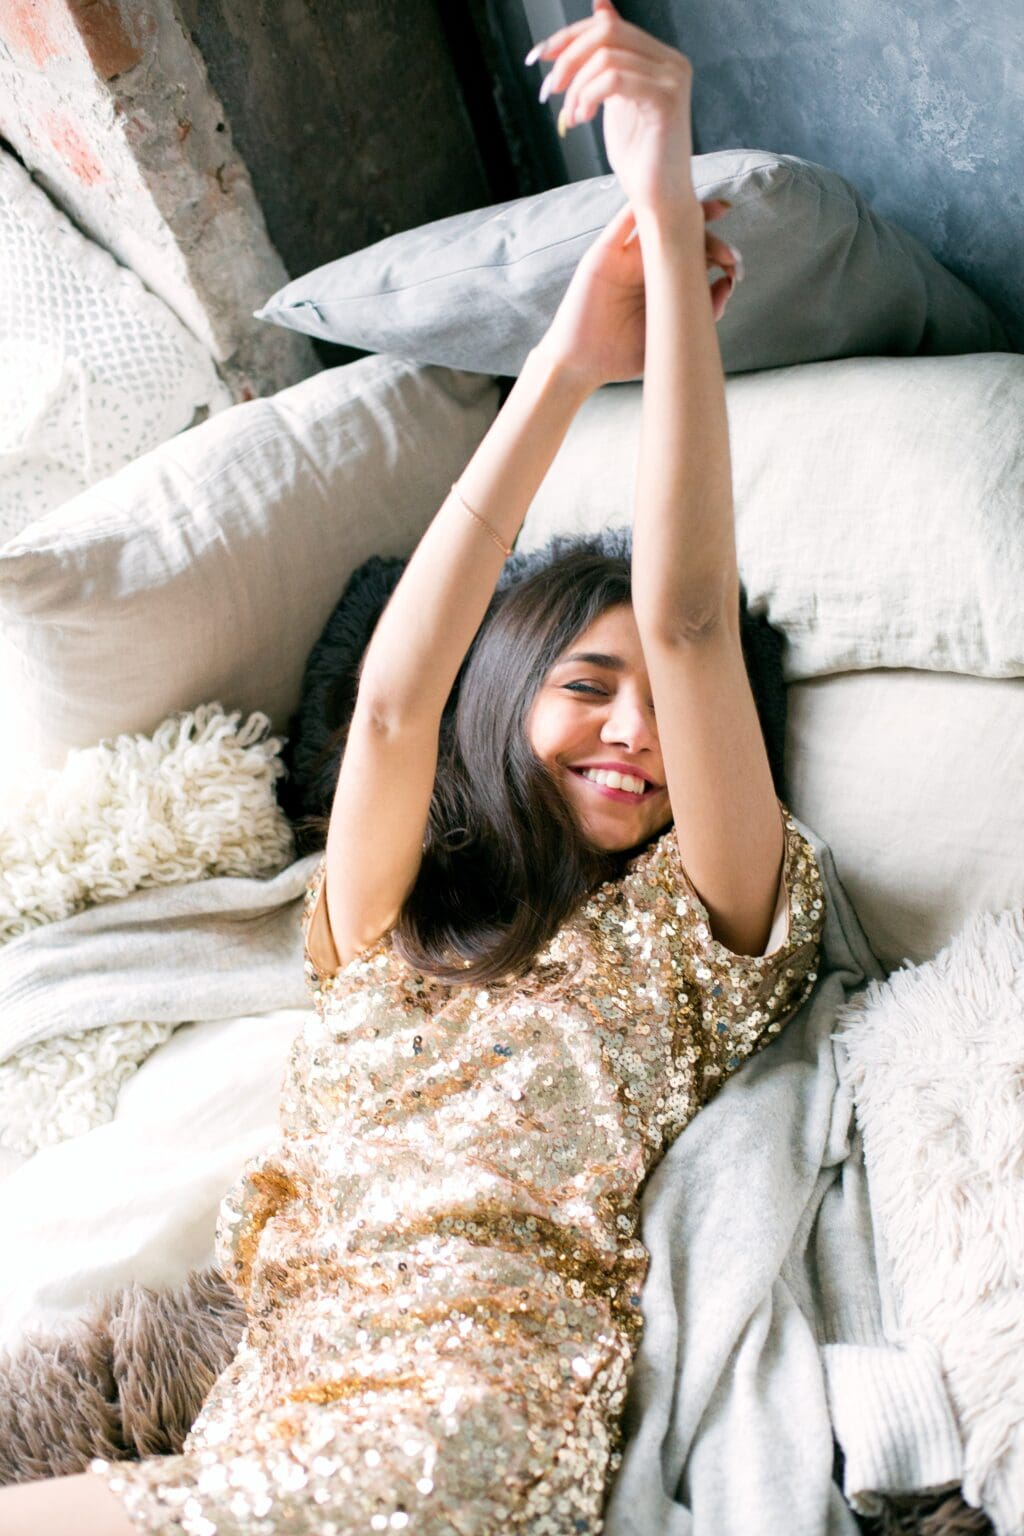 a woman laying on a bed smiling